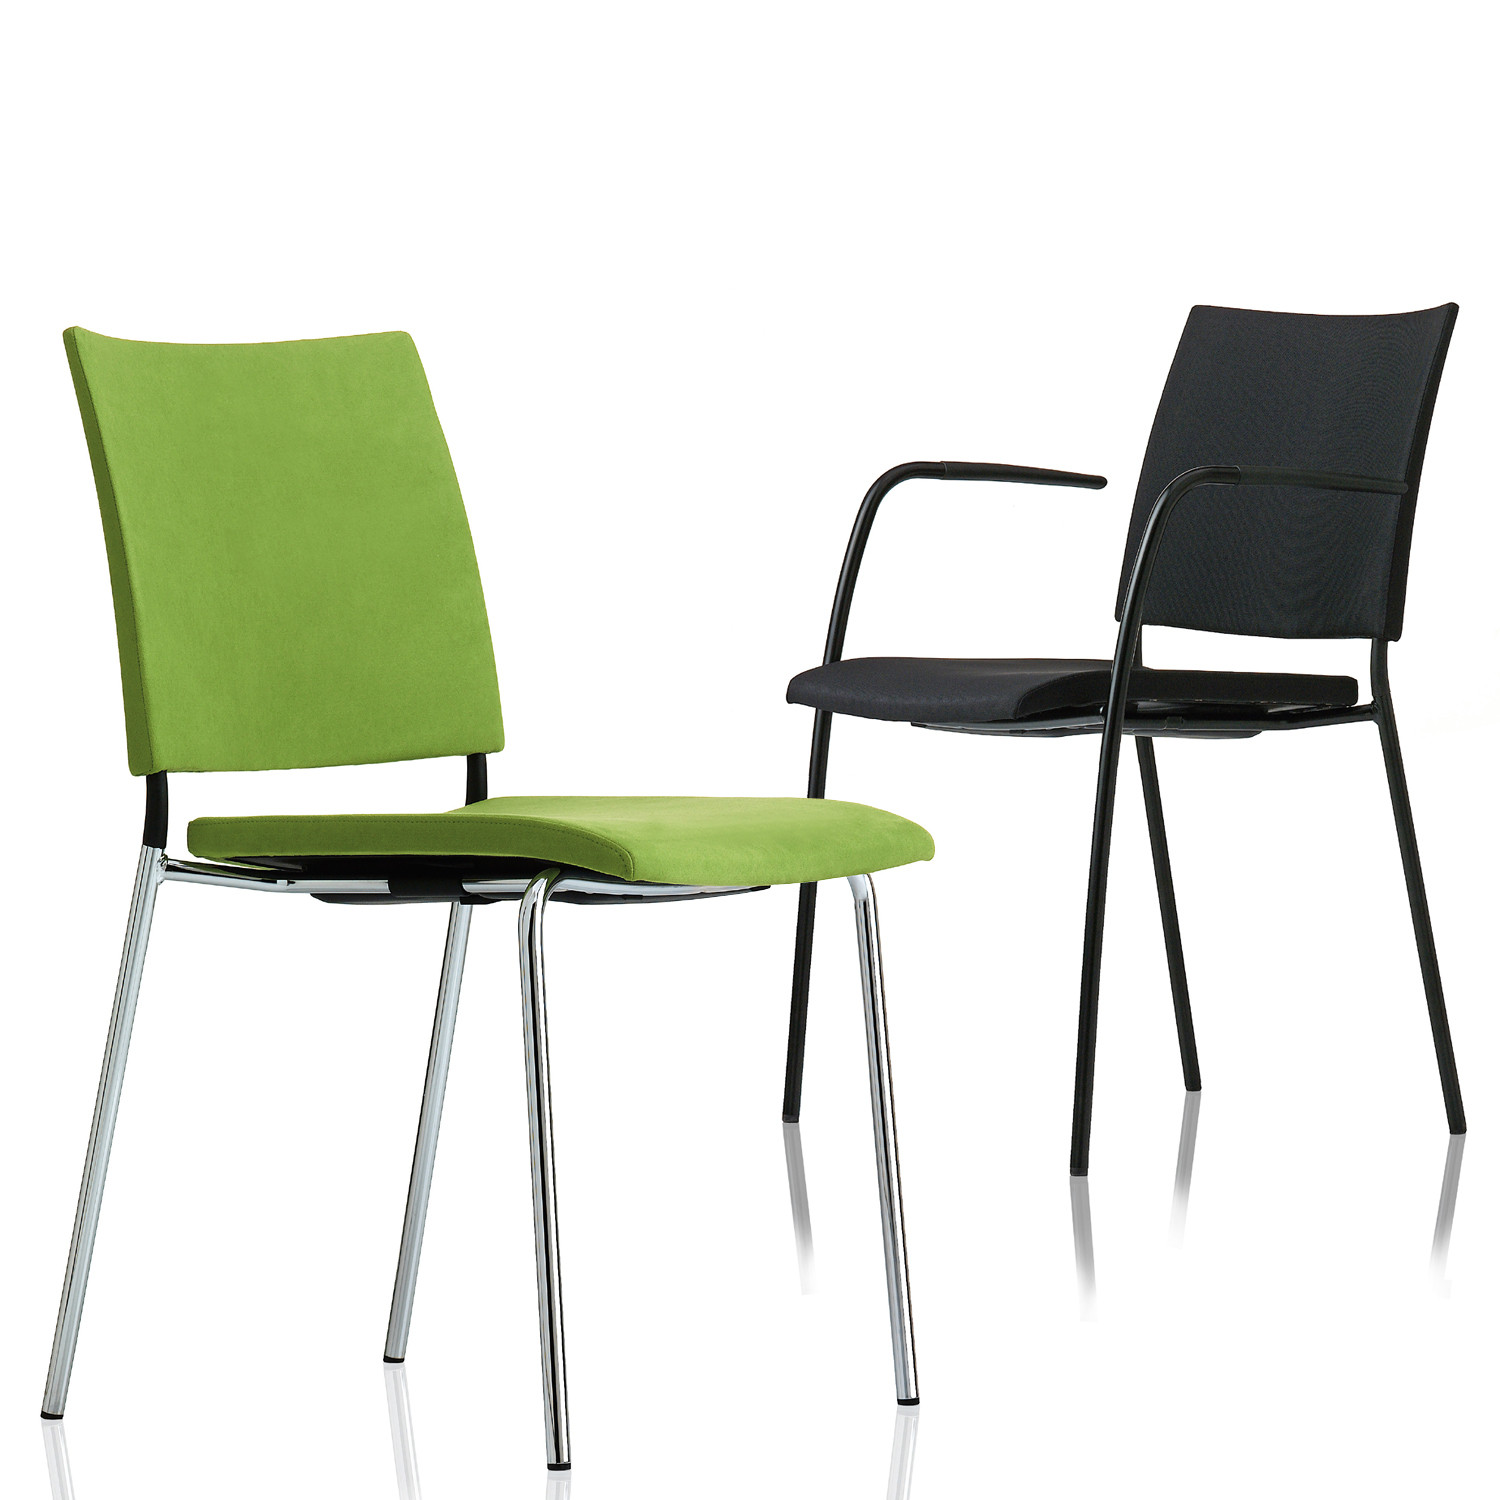 Spira Chairs Lammhults Upholstered Seating Apres Furniture